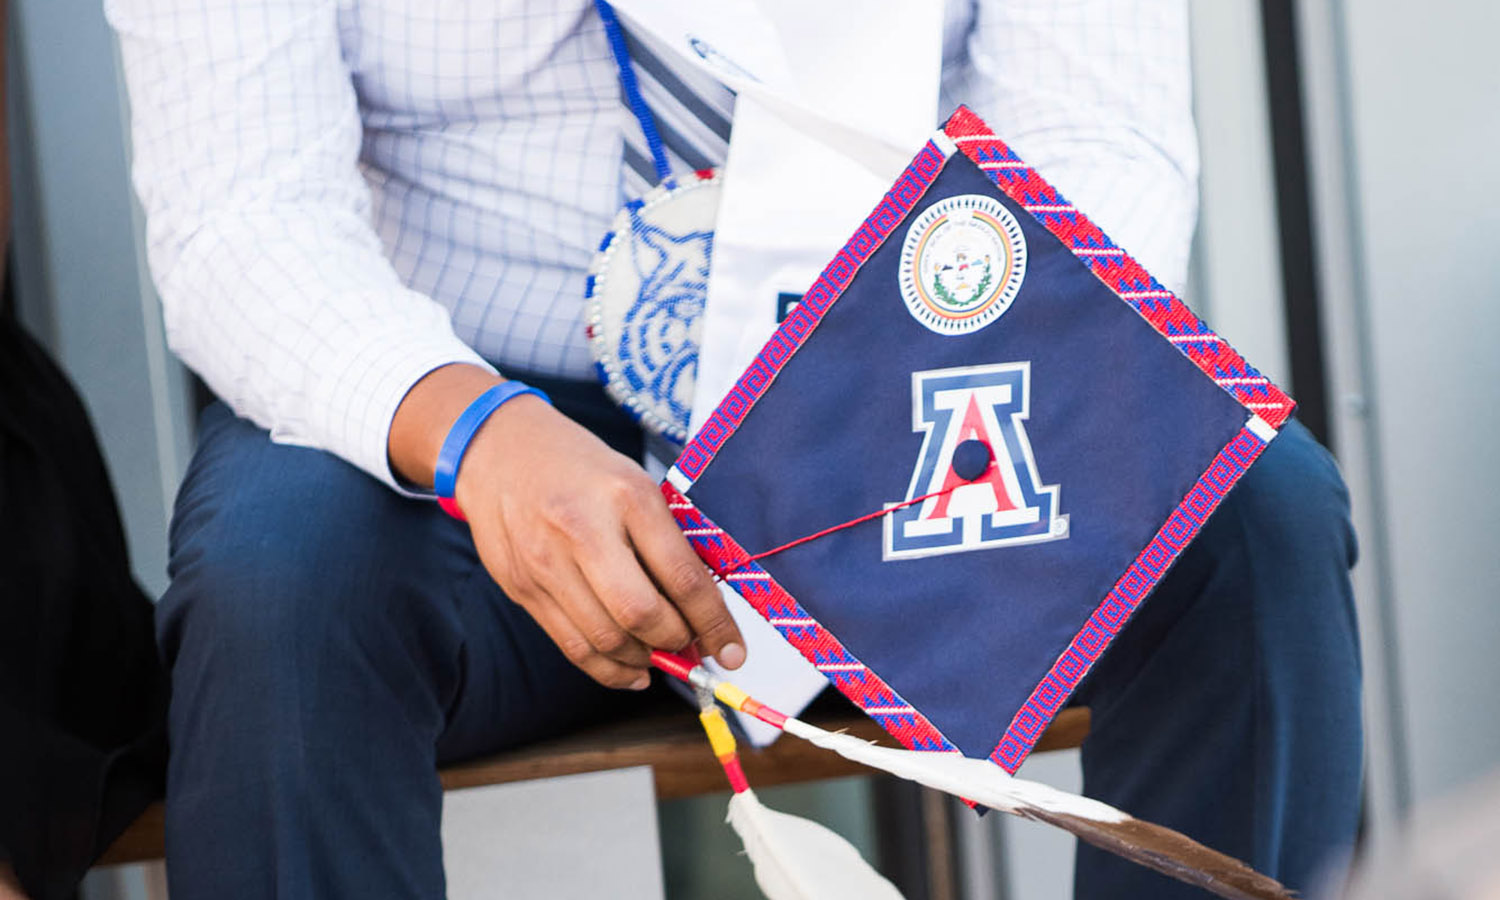 Graduation cap with Native American decor